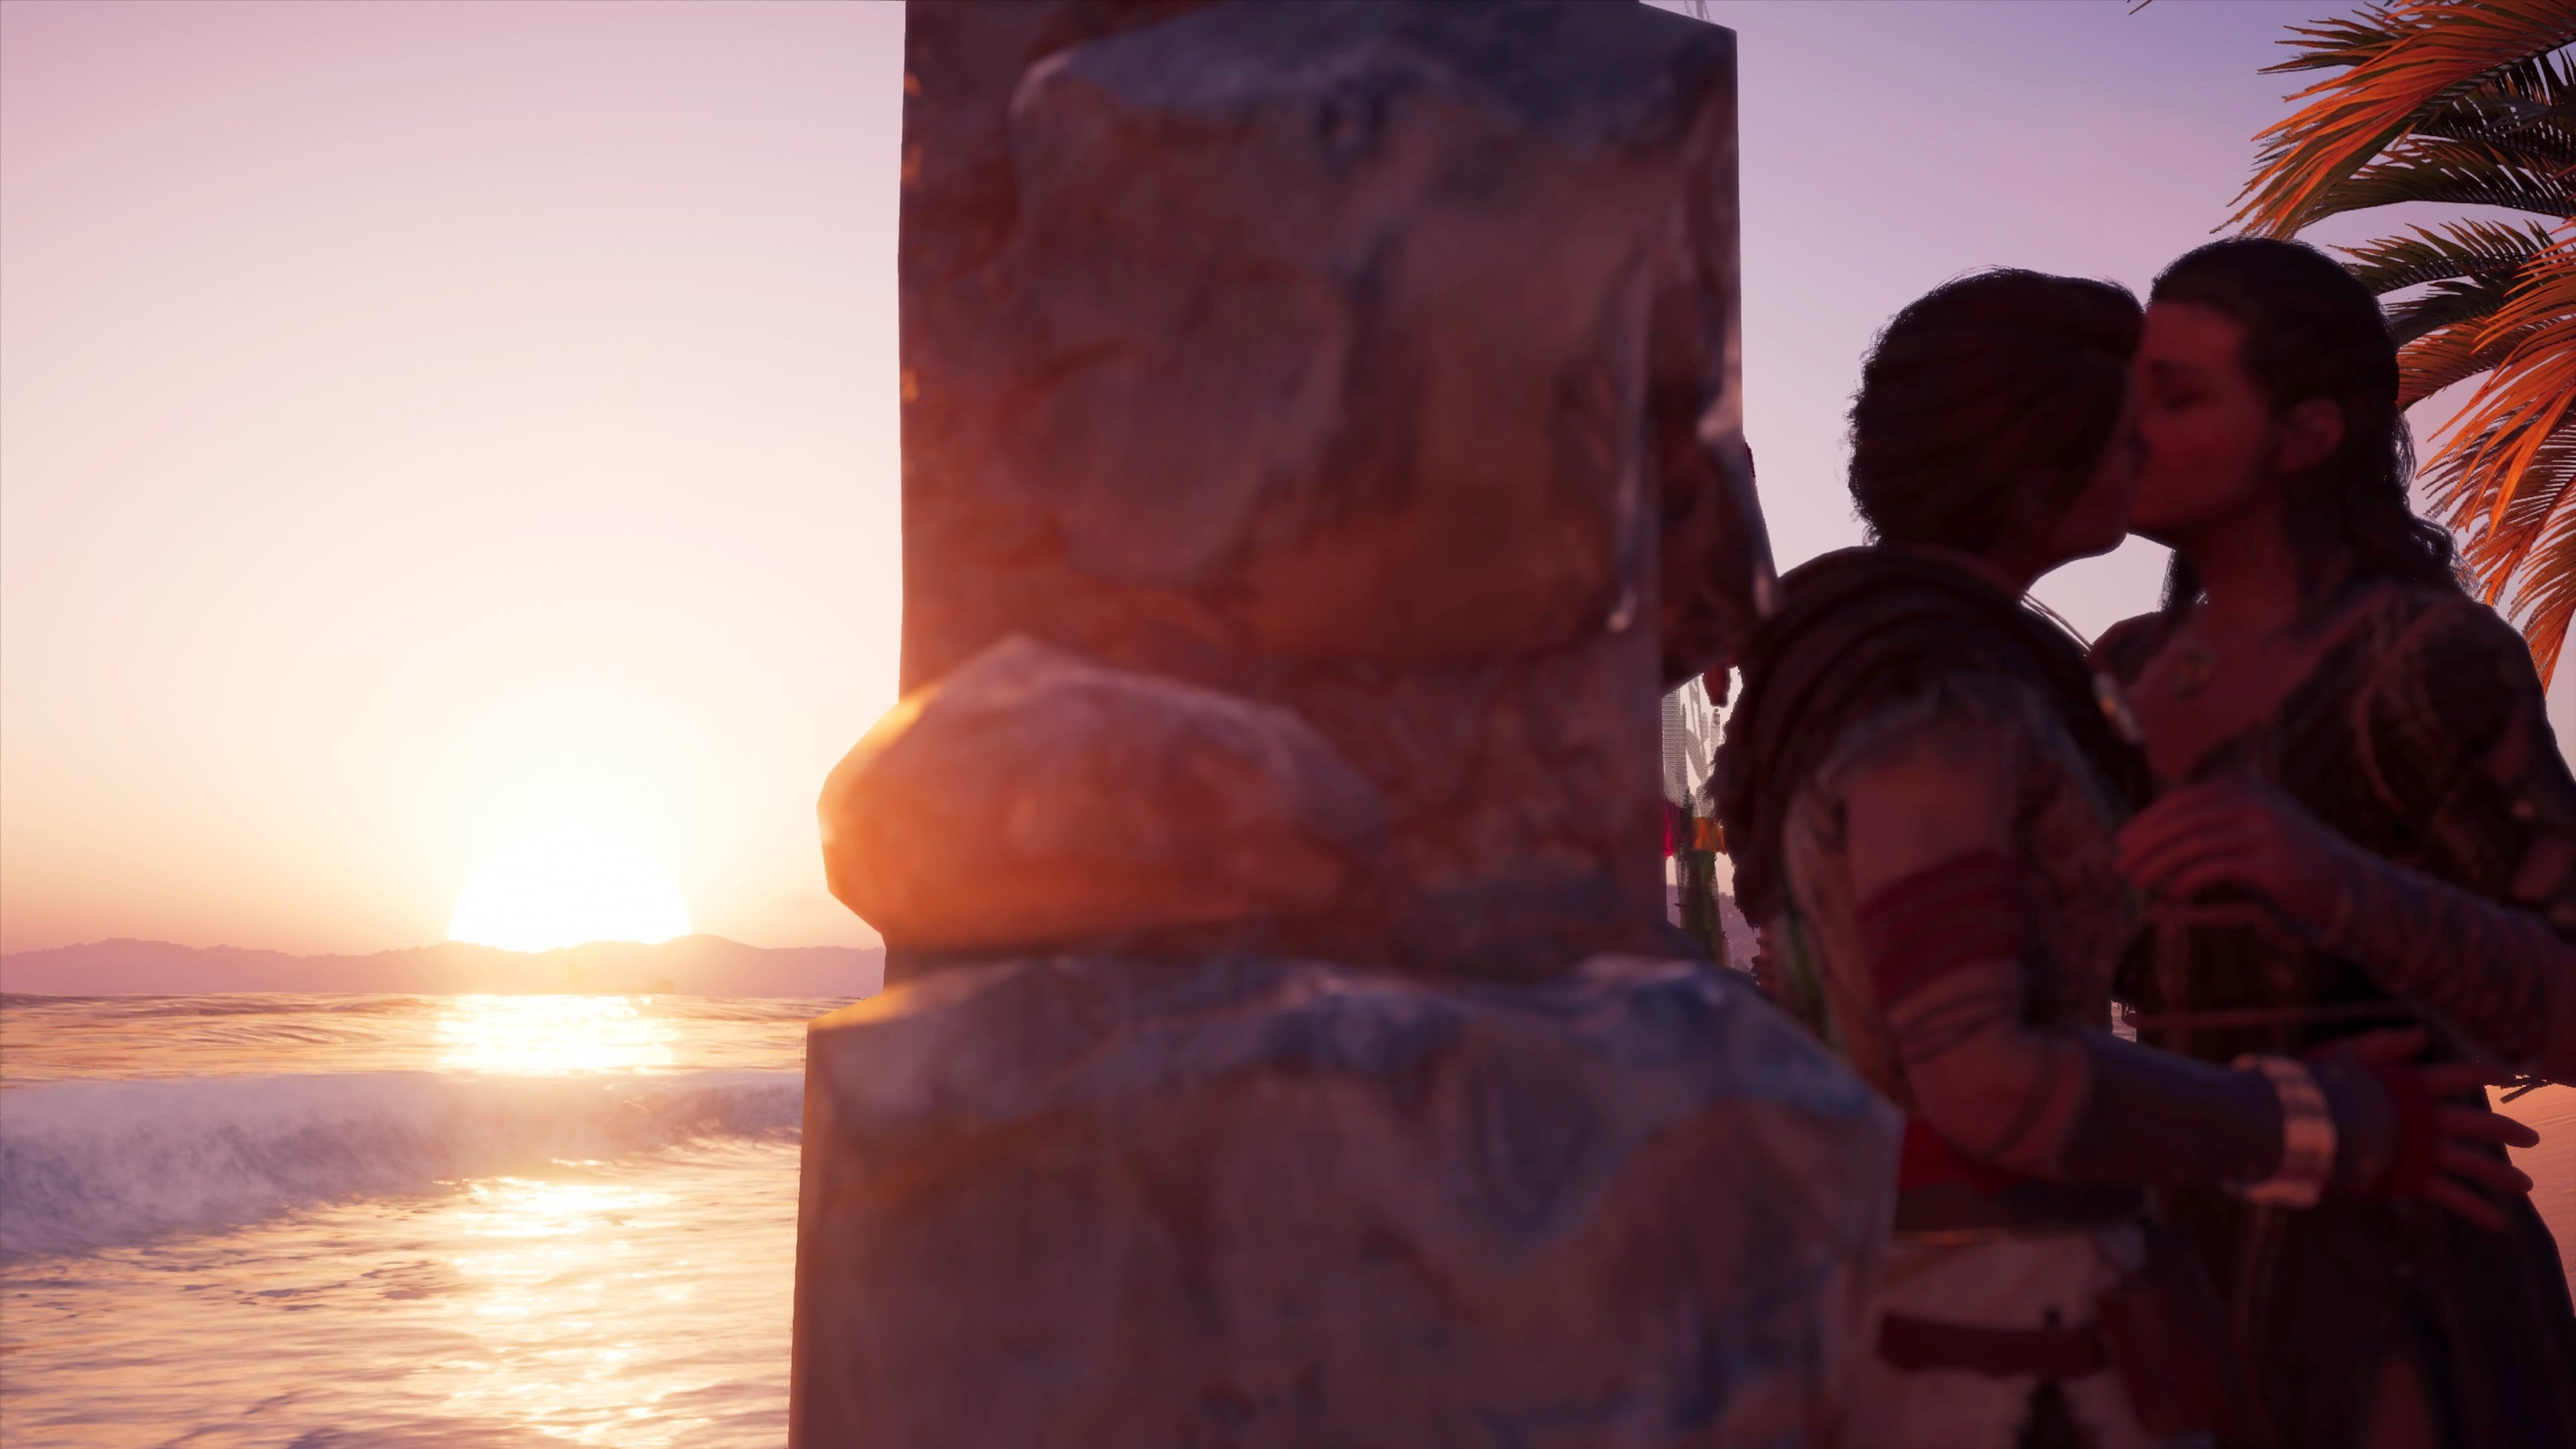 Lgbtq Group Nominates Assassin S Creed Odyssey For An Award With